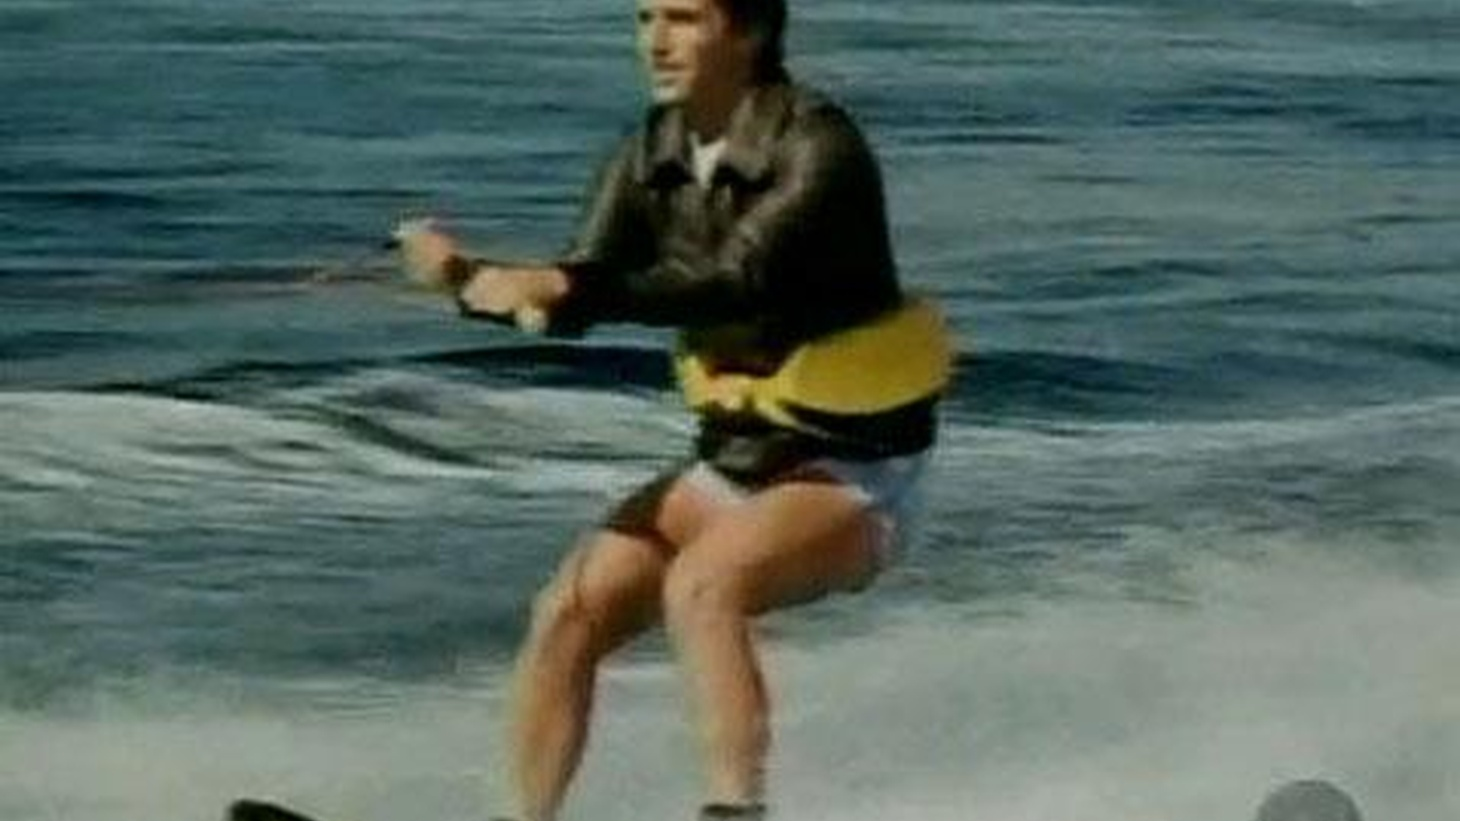 """""""Jumped the Shark"""" may be the most famous thing Fred Fox, Jr. has ever written and in a way he didn't even write it-- not that phrase exactly. Fox is the Happy Days writer behind the now infamous episode that inspired the iconic catchphrase 'jumped the shark.' Fox discusses writing the episode and its aftermath, and answers the question, """"Why water skiis?"""" Then we go to the West Coast Documentary and Reality Conference, where eager producers and willing television executives engage in speed pitching."""